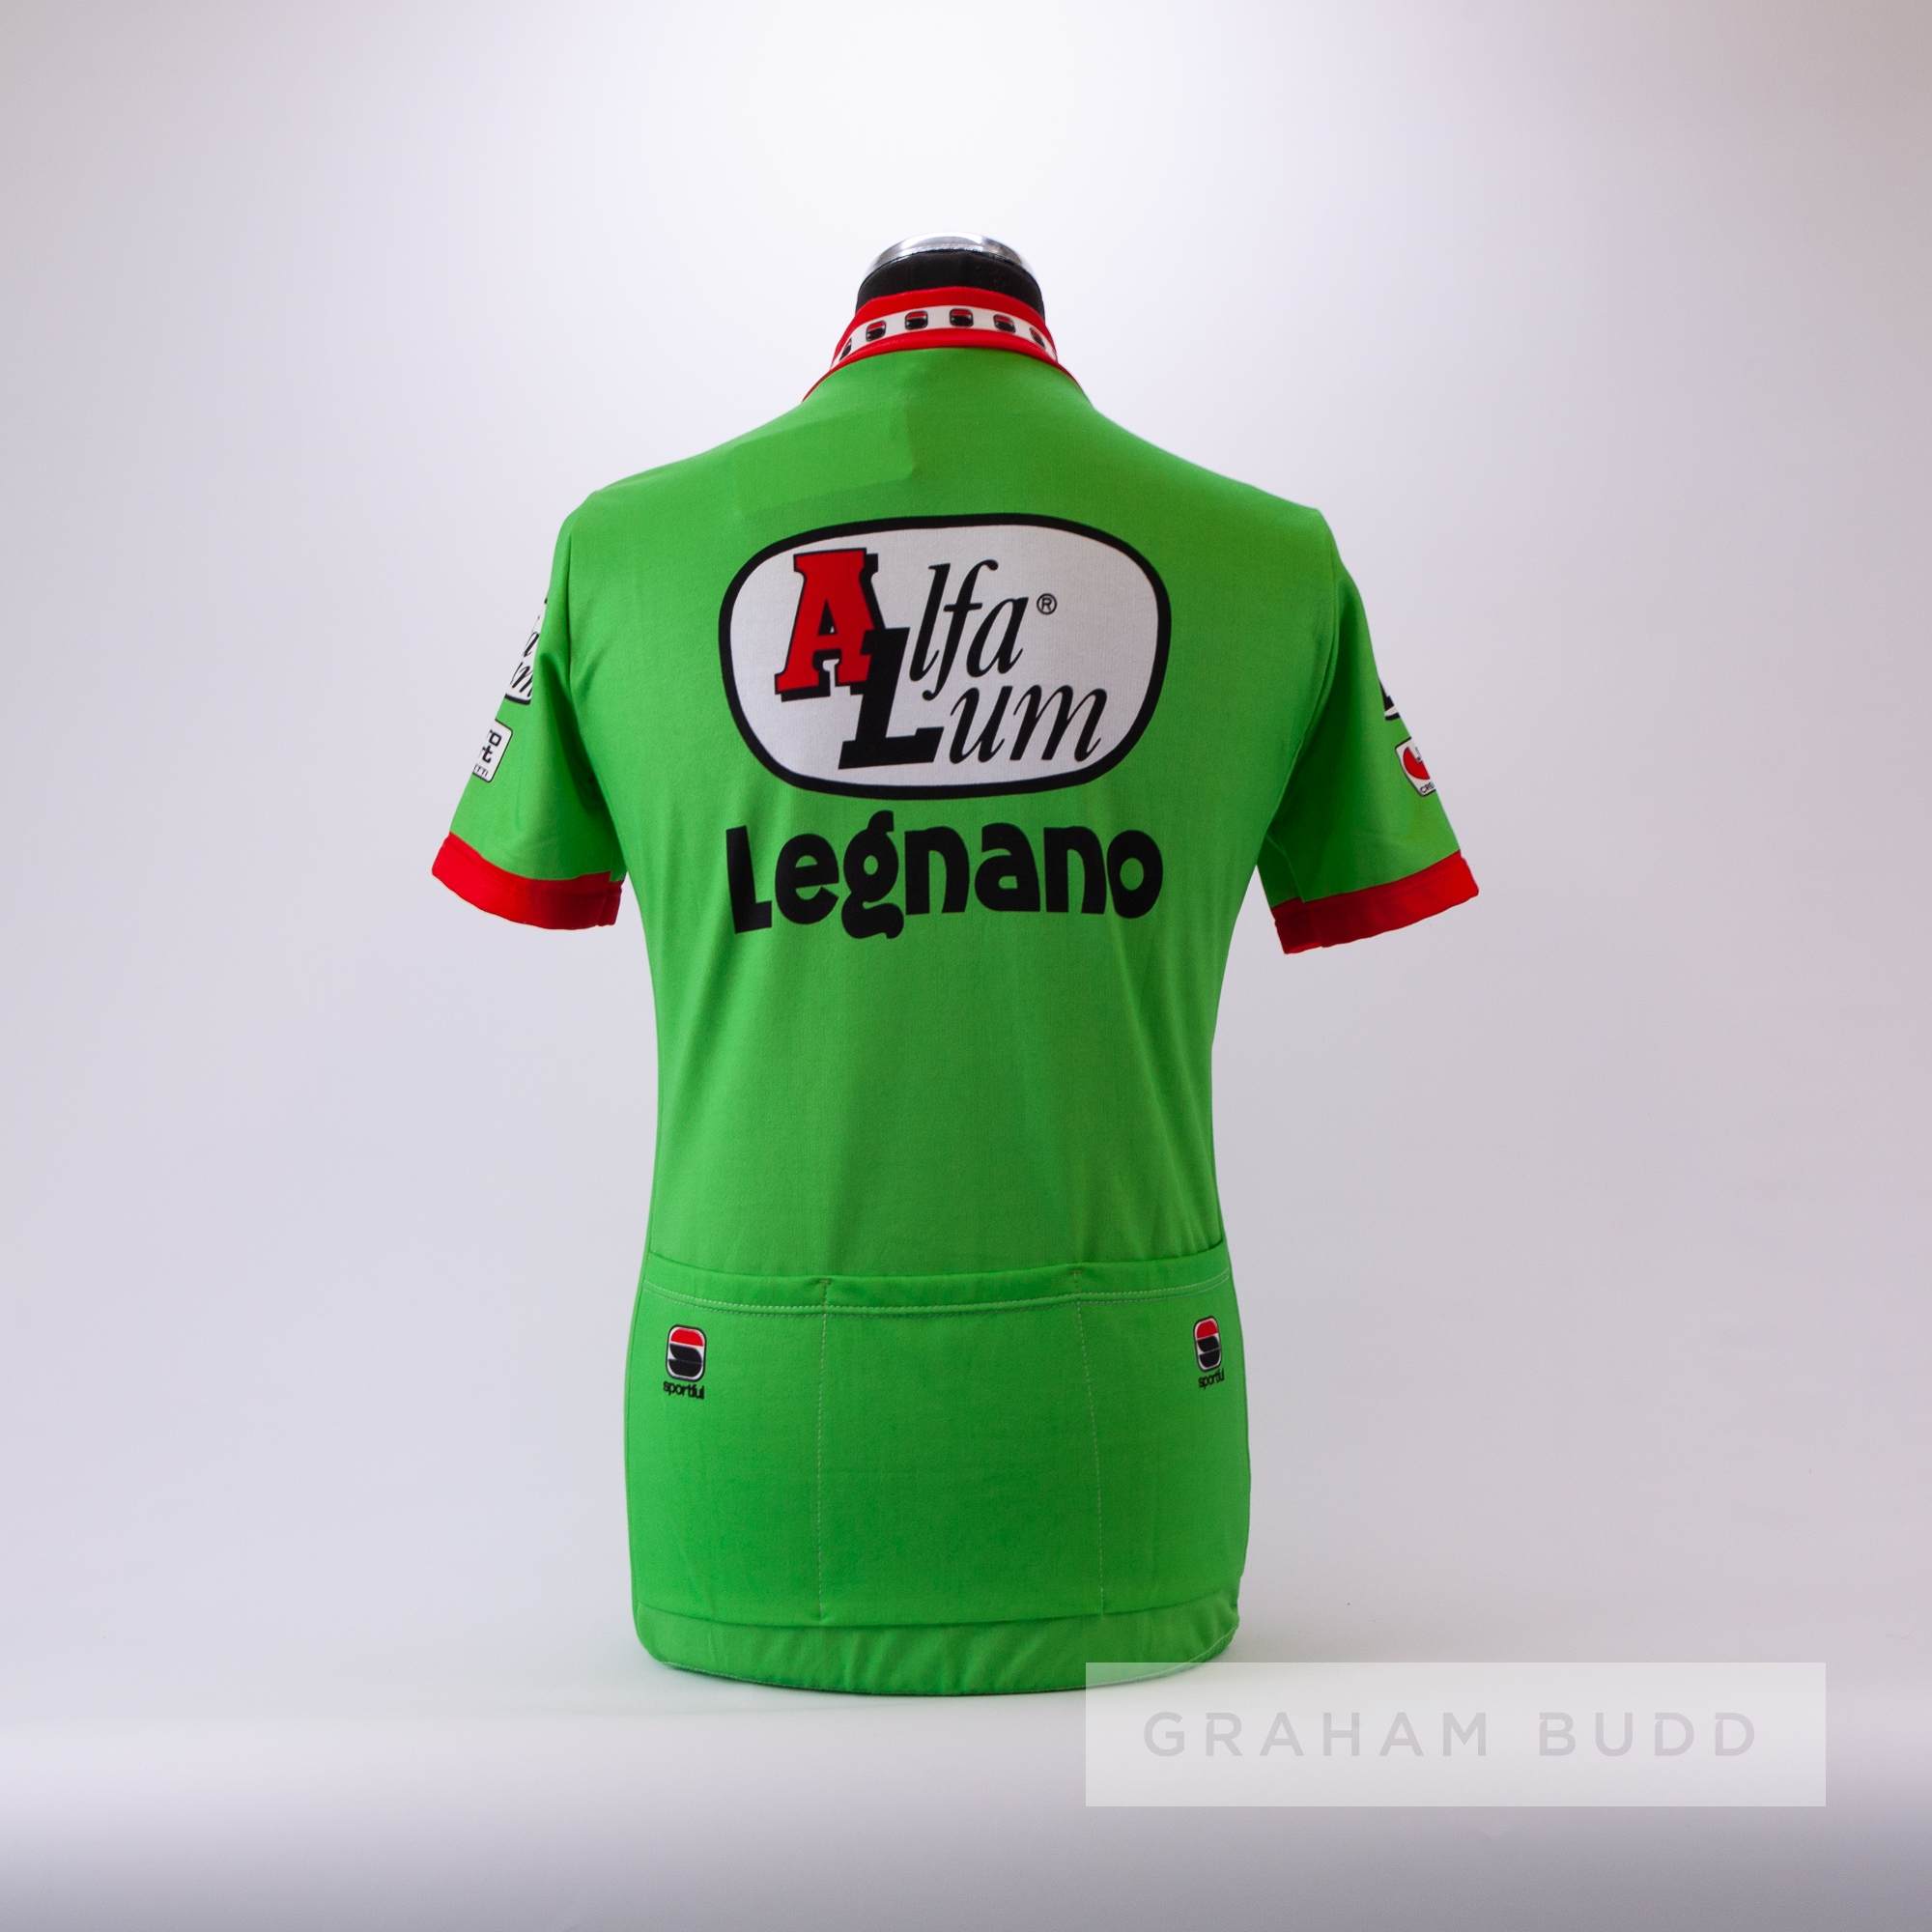 1988 green, white, red and black Italian Alfa Lum Legnano Cycling race jersey, scarce, polyester - Image 4 of 4